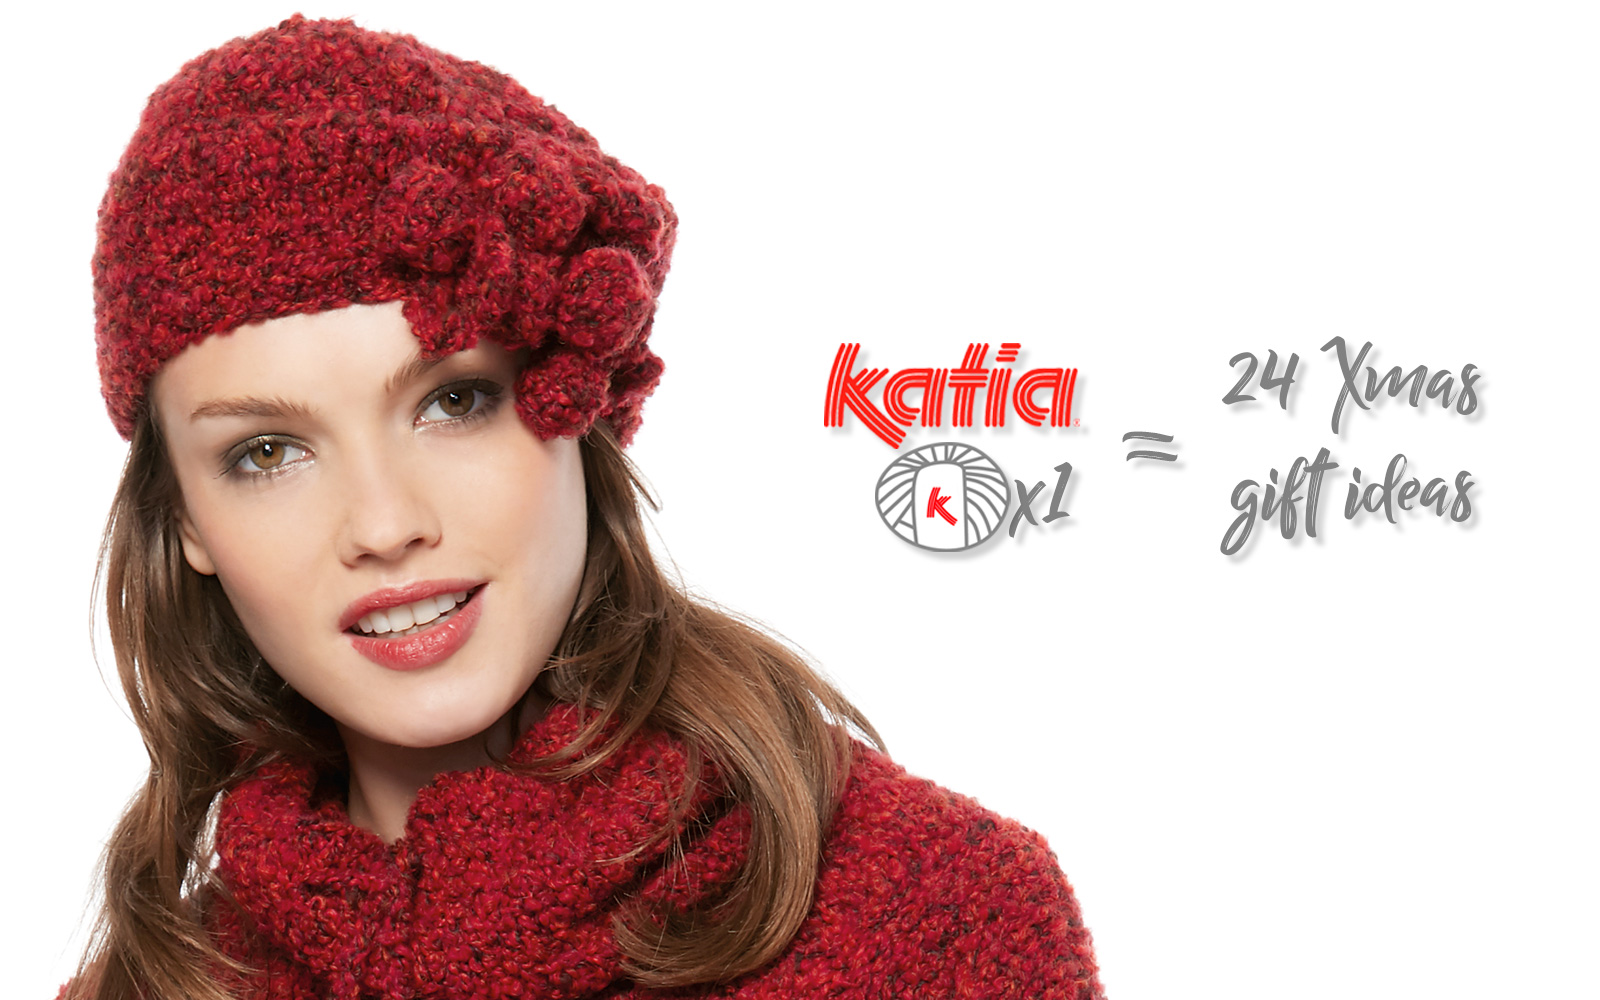 Handmade Christmas gift ideas each made with only 1 ball of Katia yarn